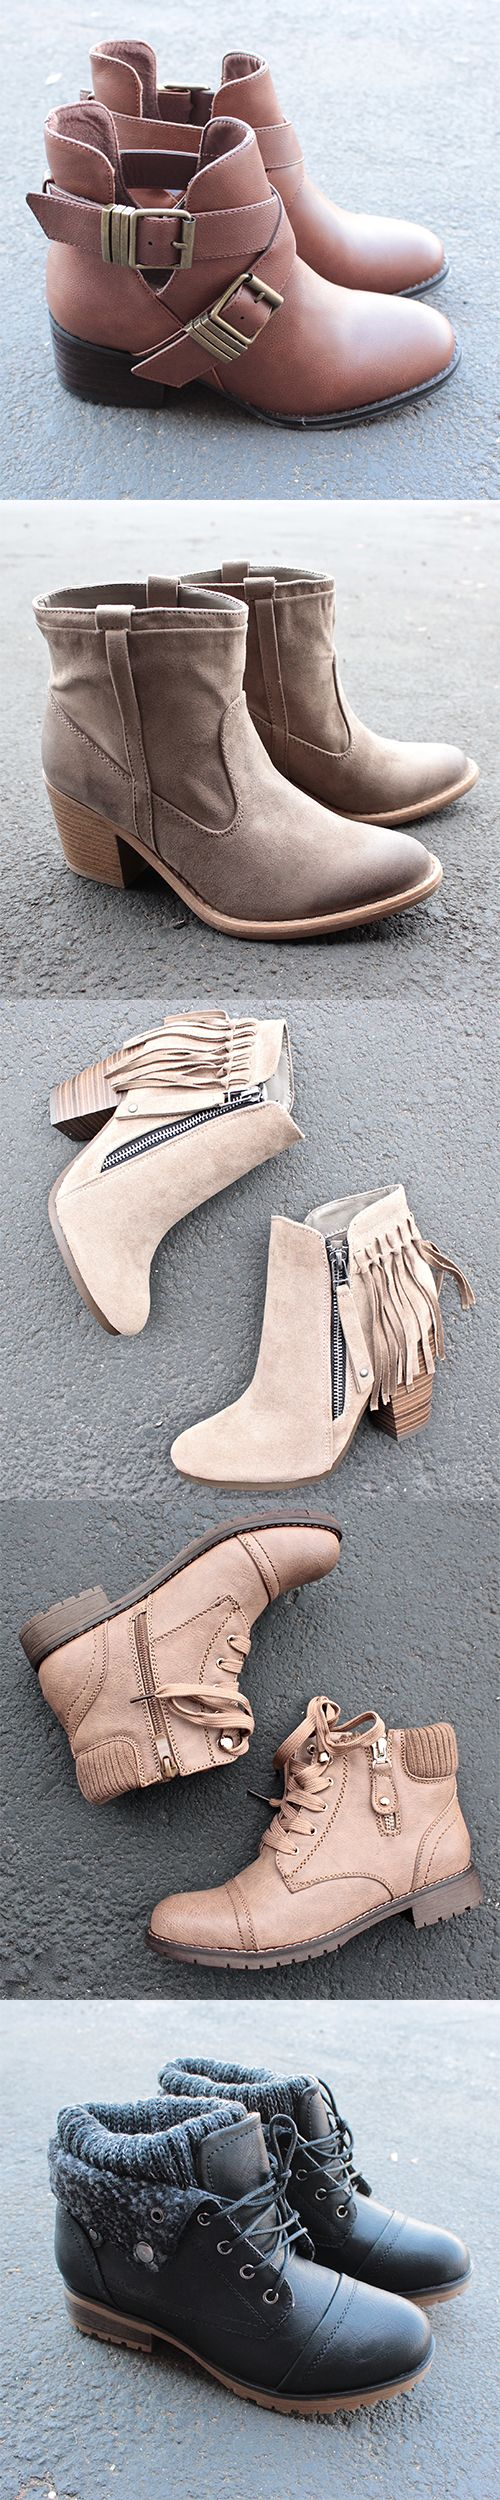 cut out booties, fringe booties, sweater booties & all thing ankle boots - our new obsession! Check out our boot selection at http://www.shophearts.com